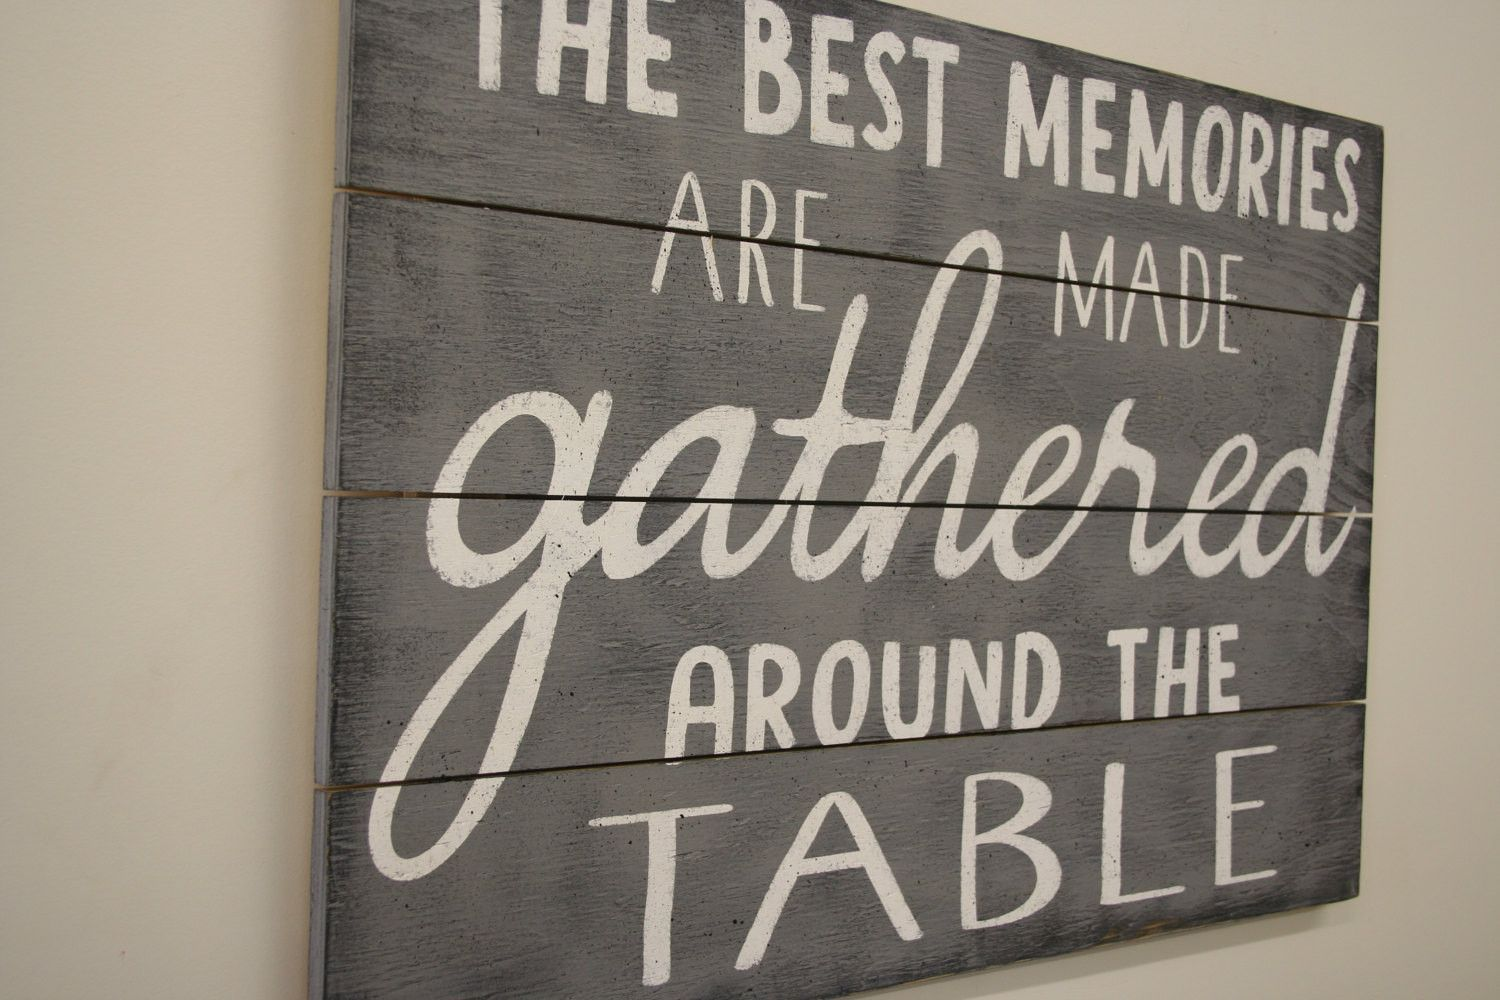 The Best Memories Are Made Gathered Around The Table Wood Kitchen Alluring Wall Art For A Dining Room Inspiration Design